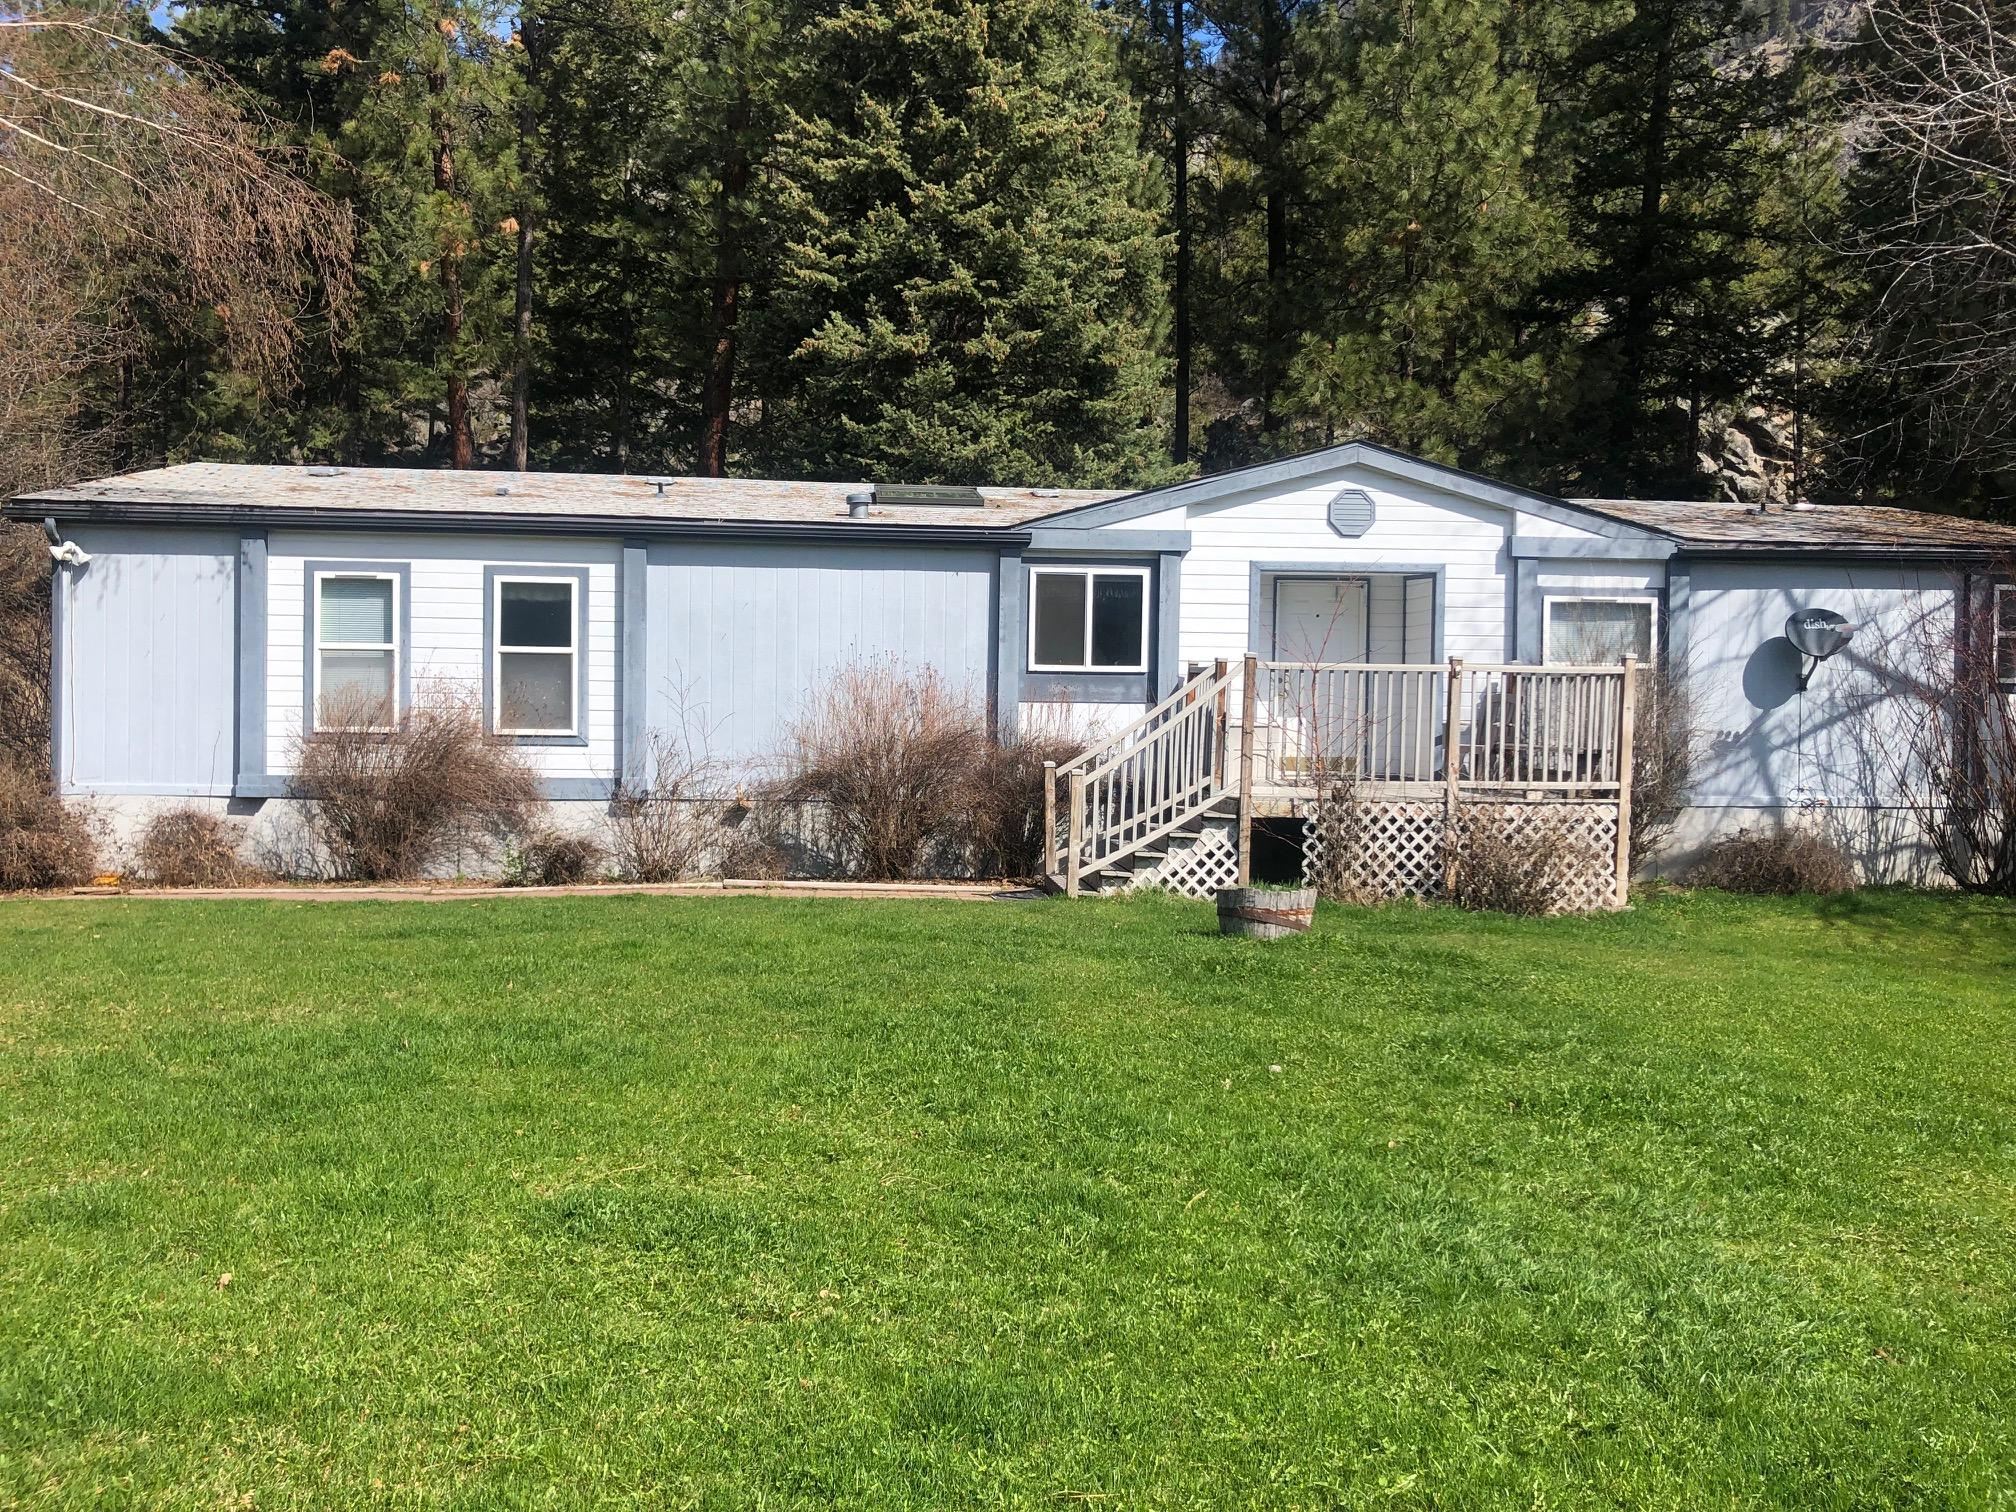 Great Views with this 3 bdrm, 2 bath manufactured home and yet lots of privacy and wildlife.